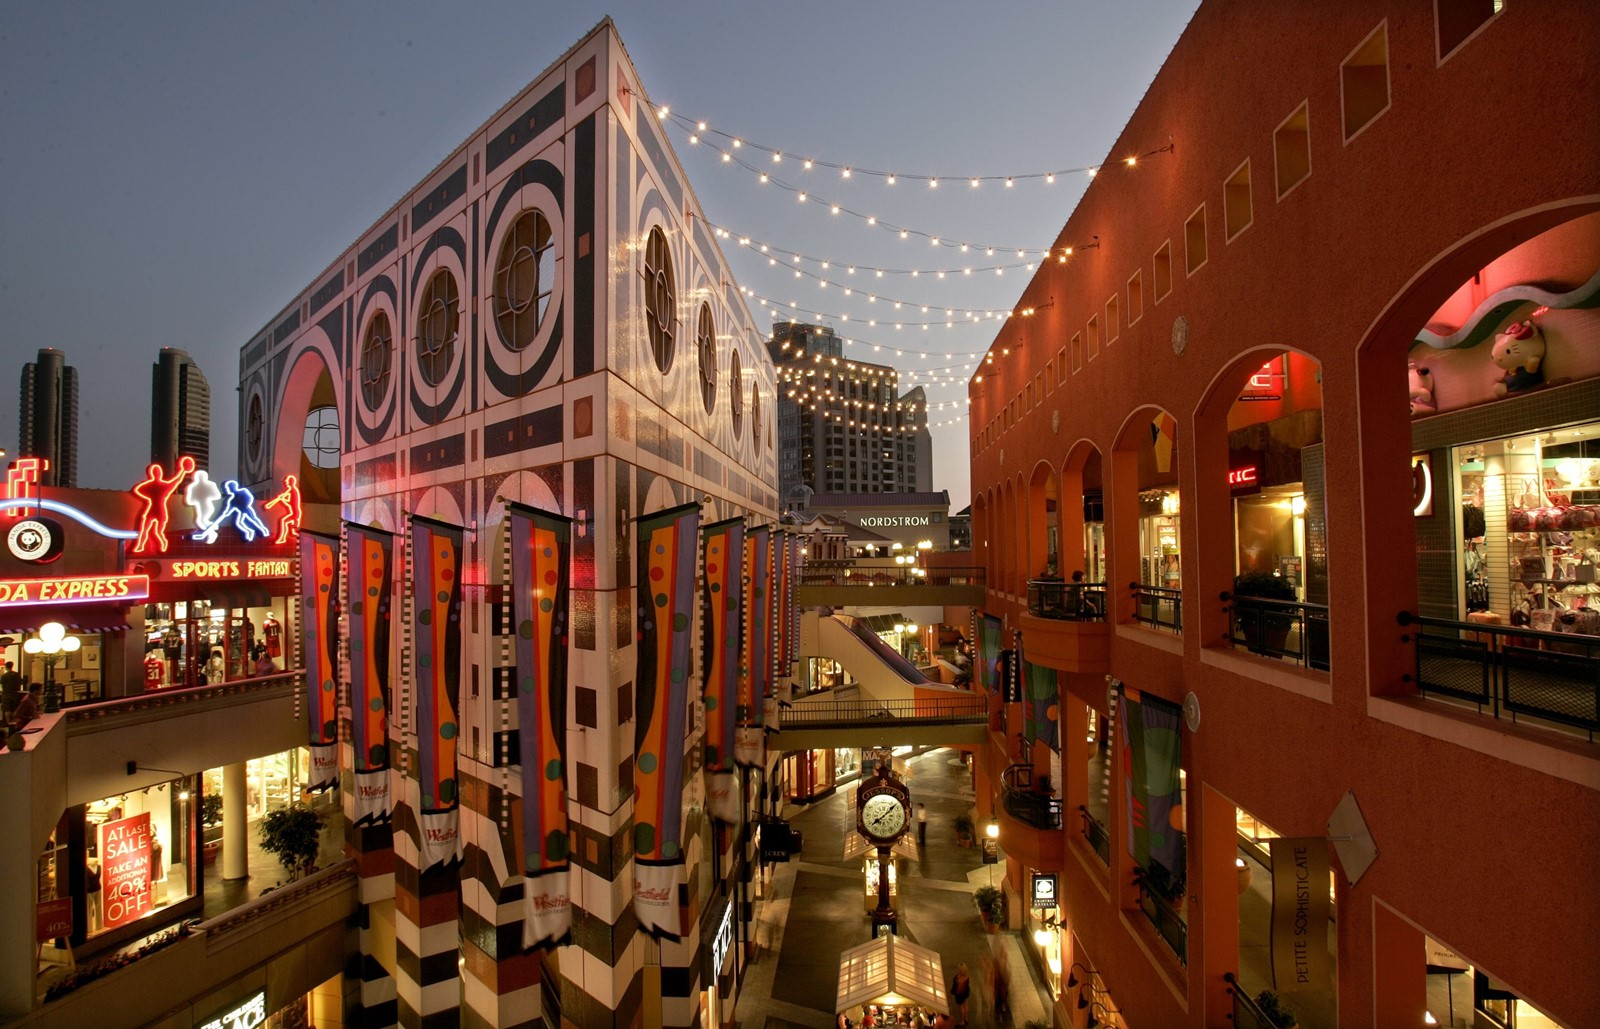 582c4065 A SHOPLIFTING ring targeted Horton Plaza, above, and other malls in San  Diego County and beyond for a decade, prosecutors say.